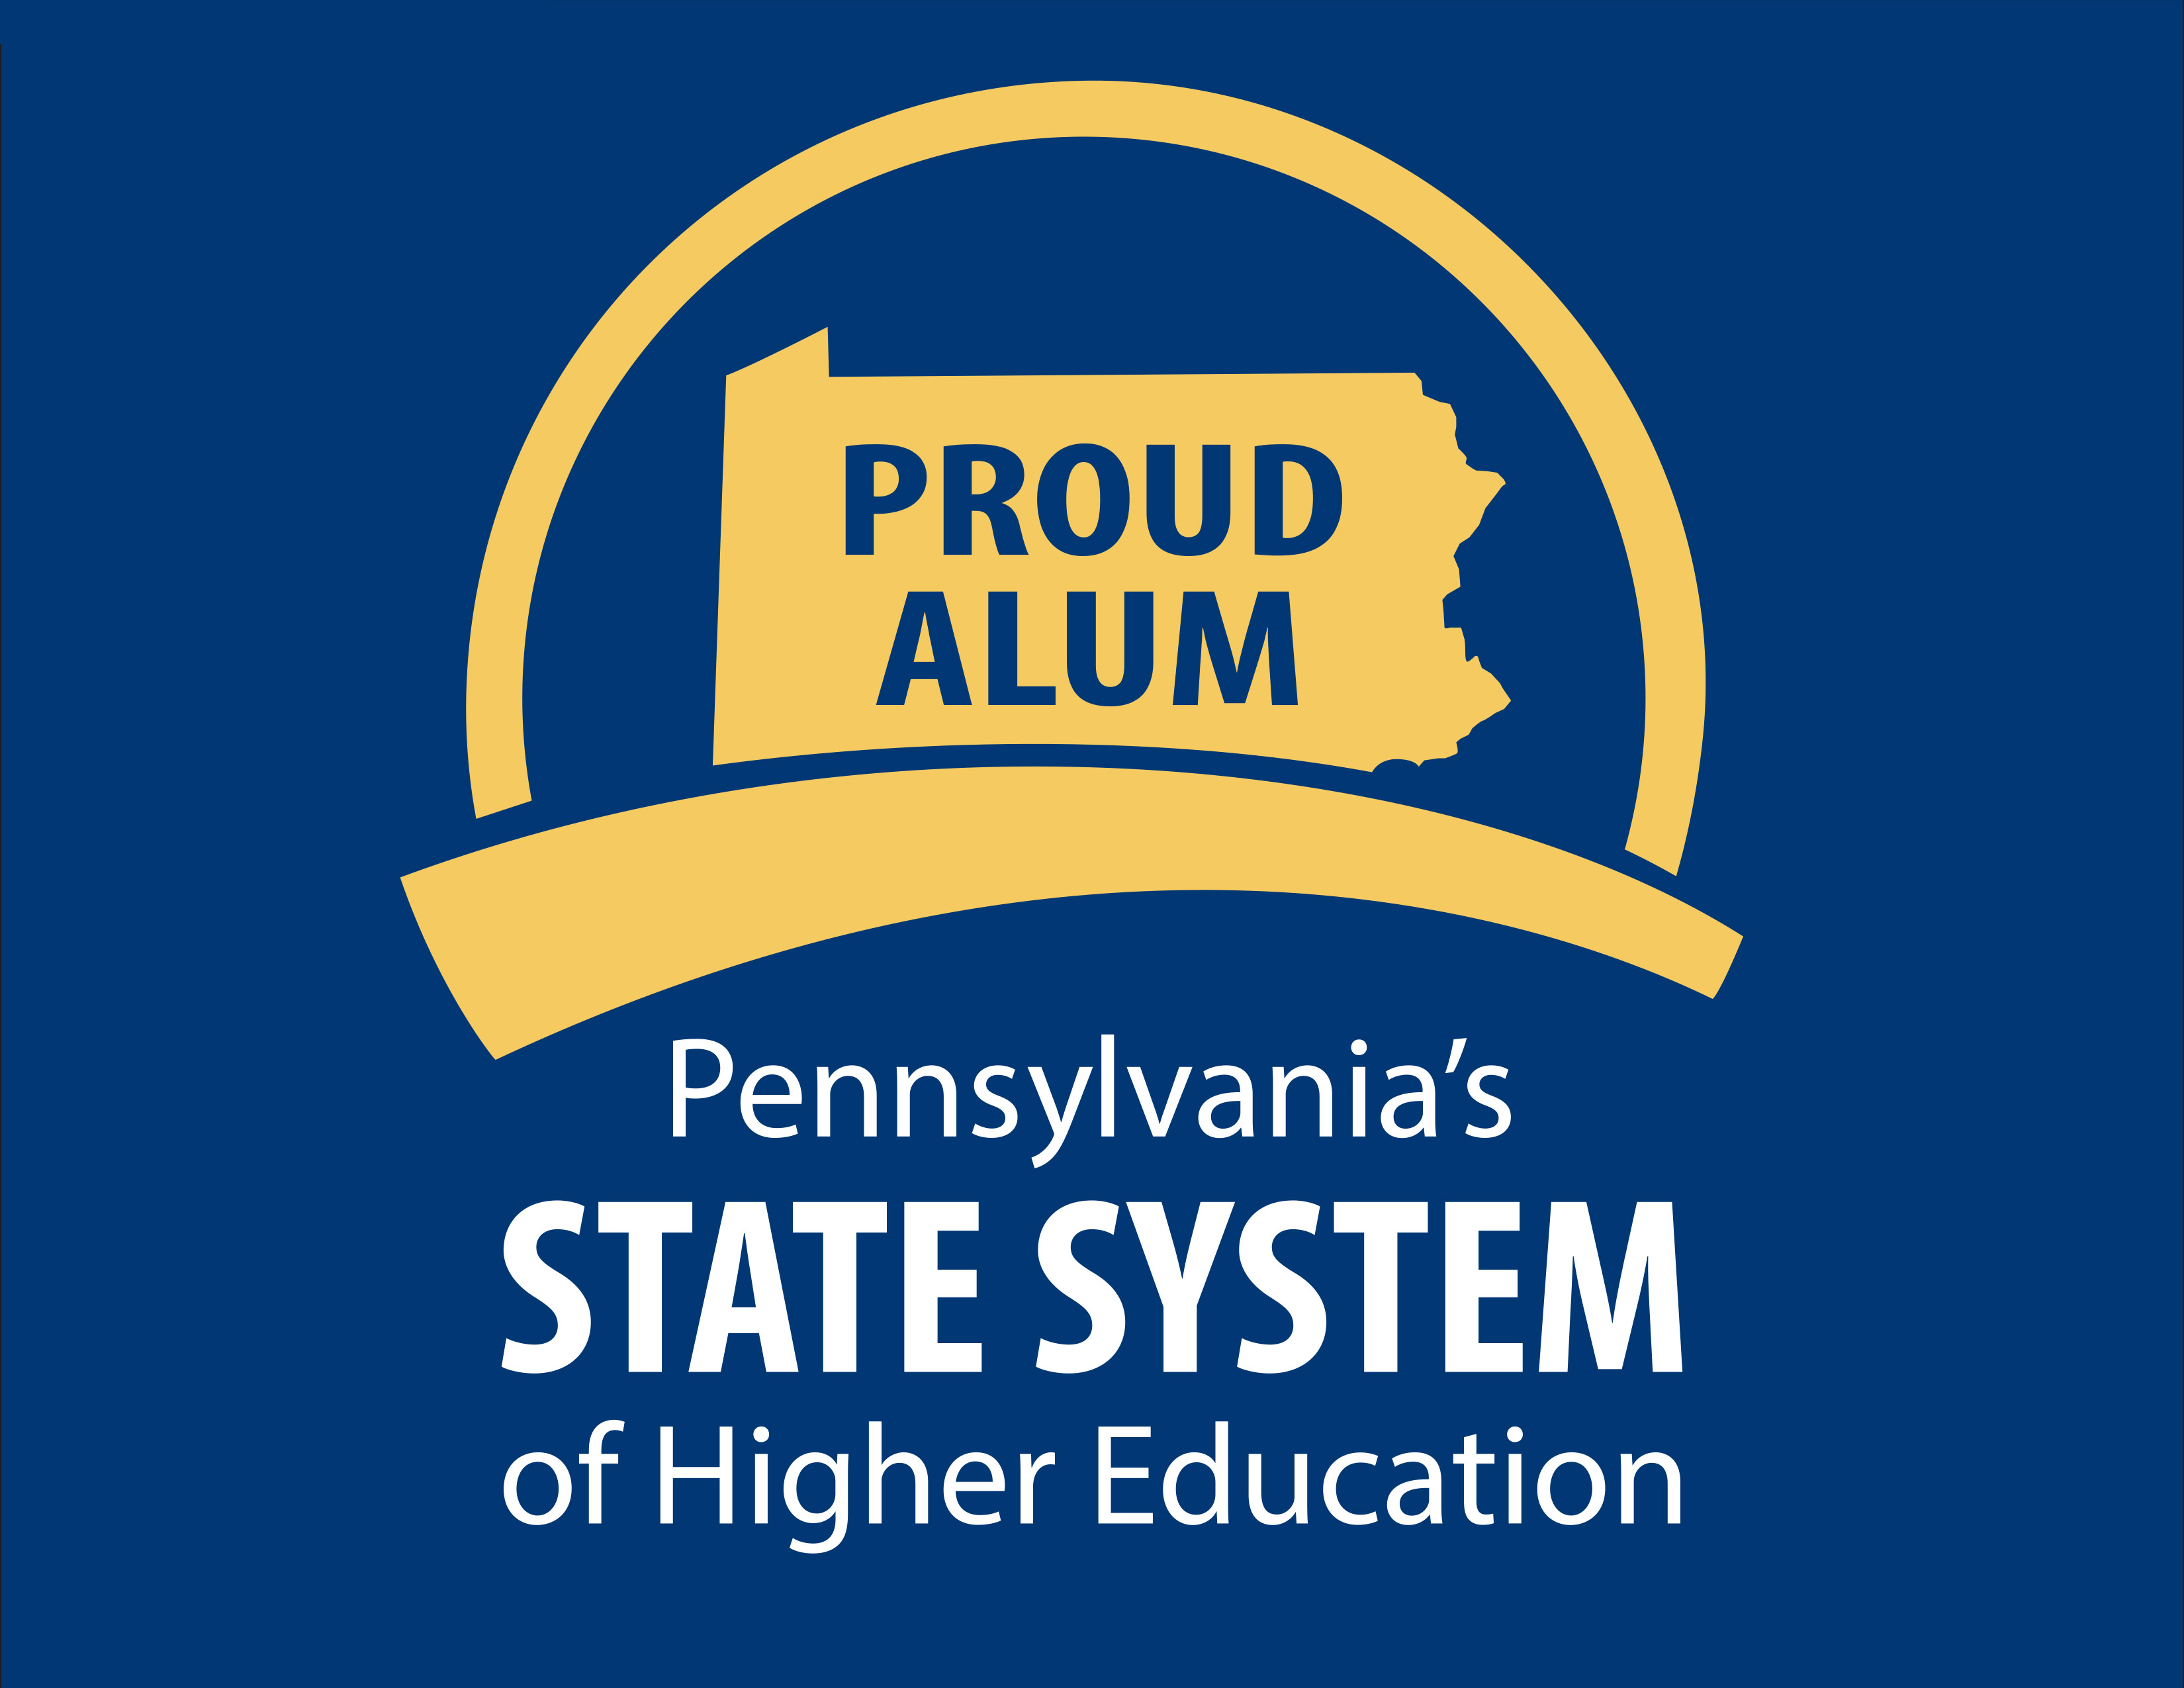 State System Proud Alum